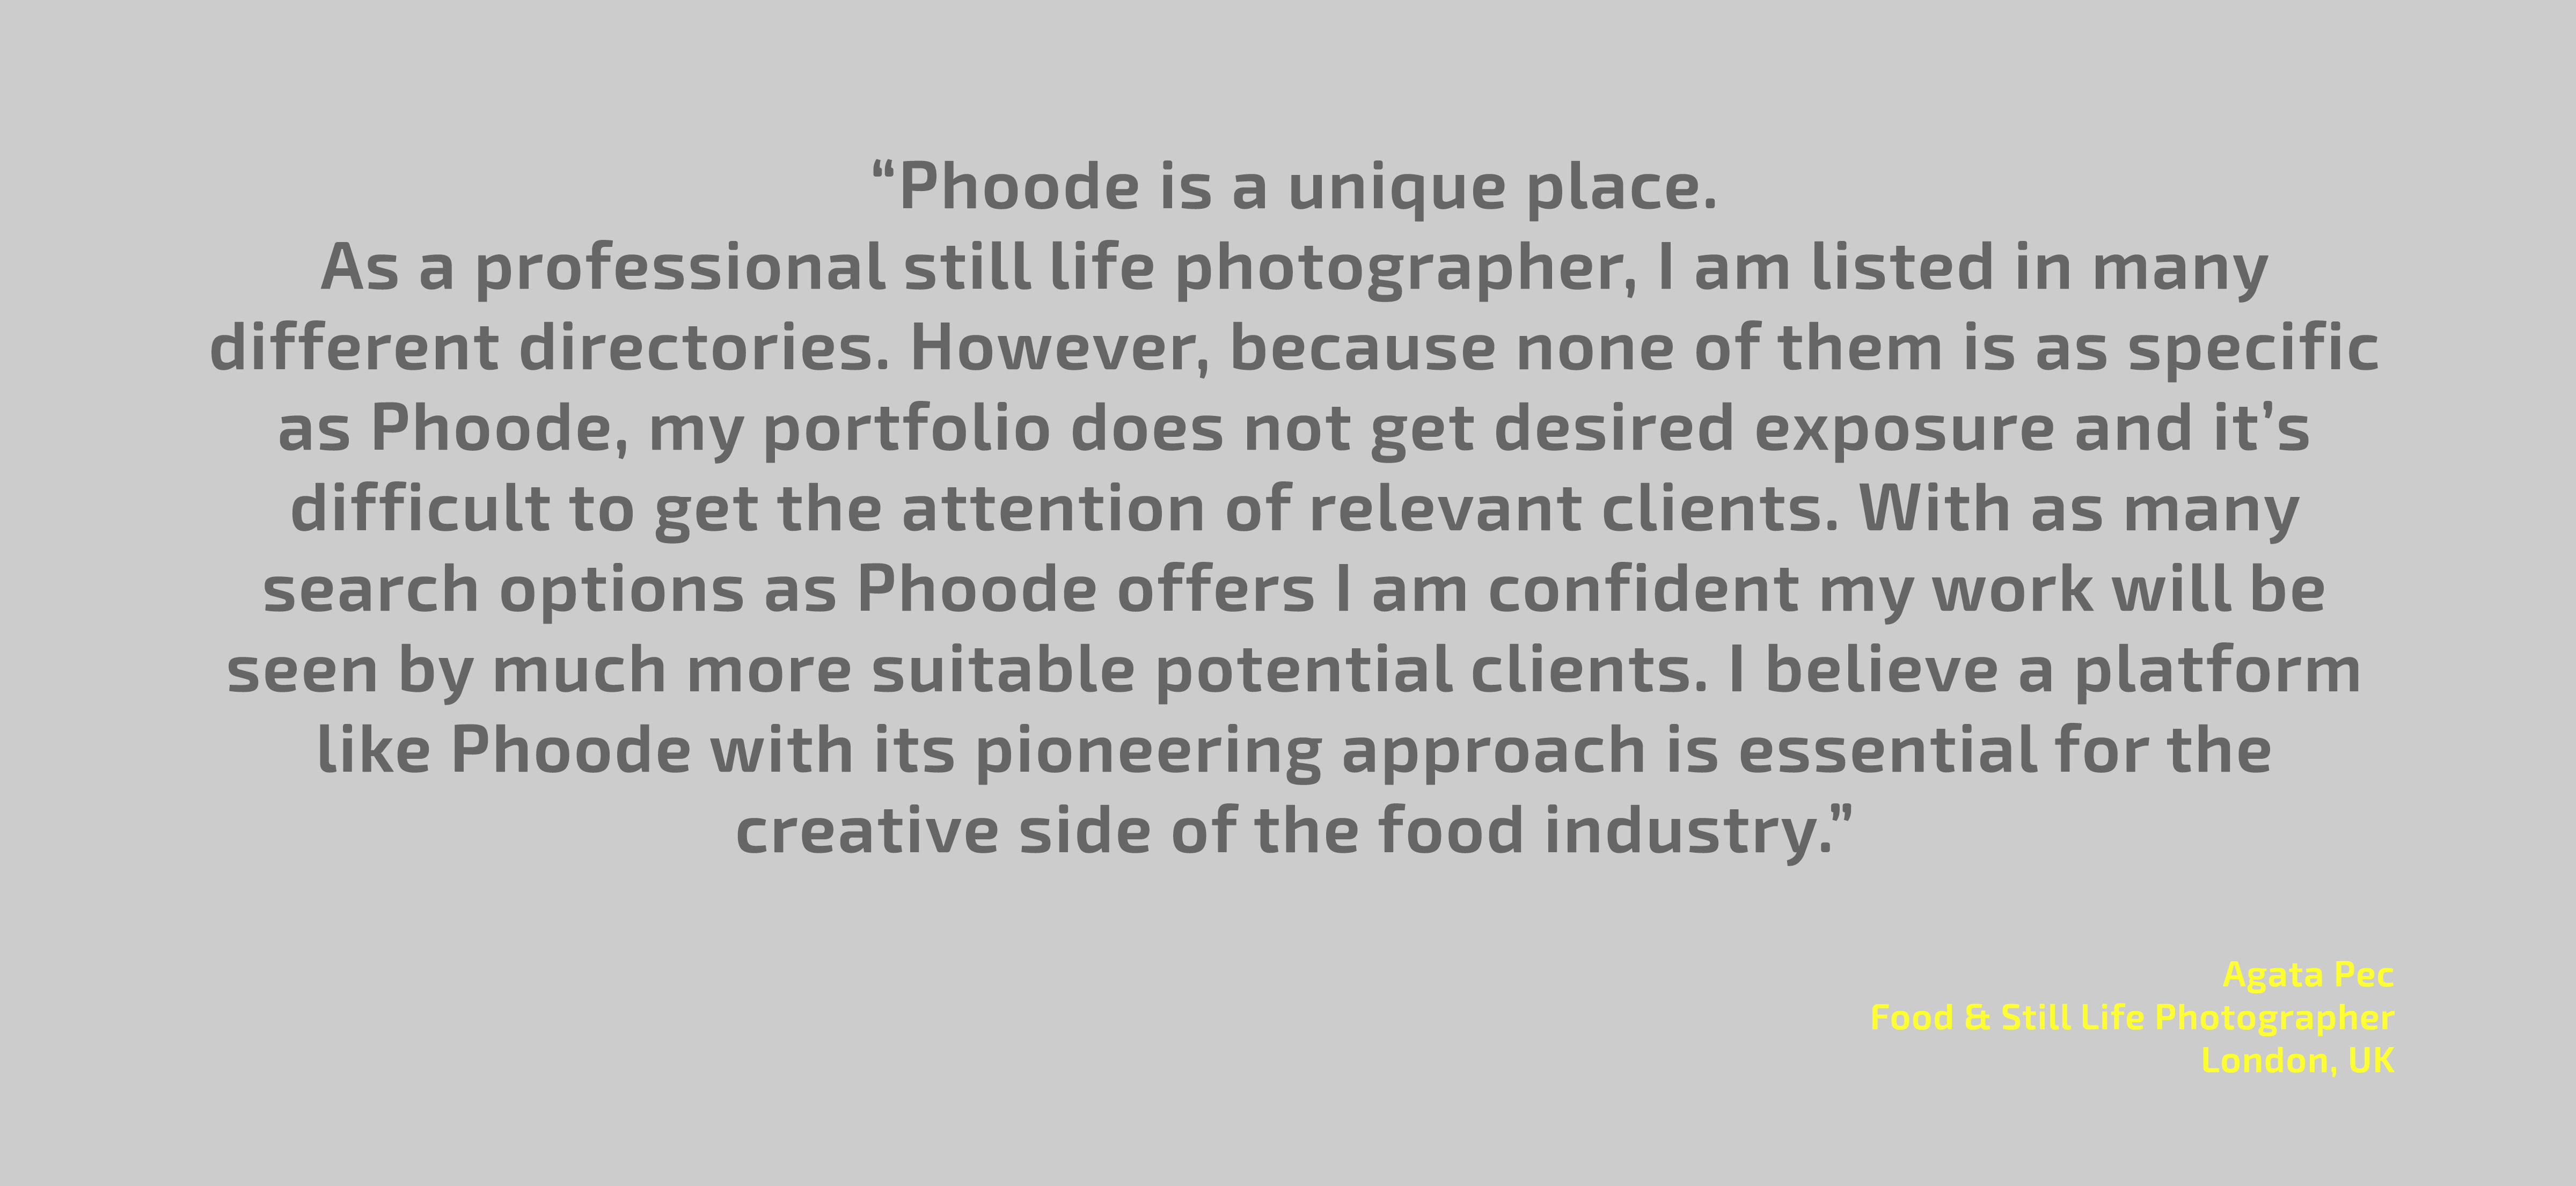 Phoode, food photographer search, food stylist, food styling, food writer, food brand, food branding platform, food advertising platform, food startup, creative director, food marketing, food, restaurant marketing, marketplace, hungry, need help, restaurant, founder, food creative marketplace, food illustrator, search hire food creatives,